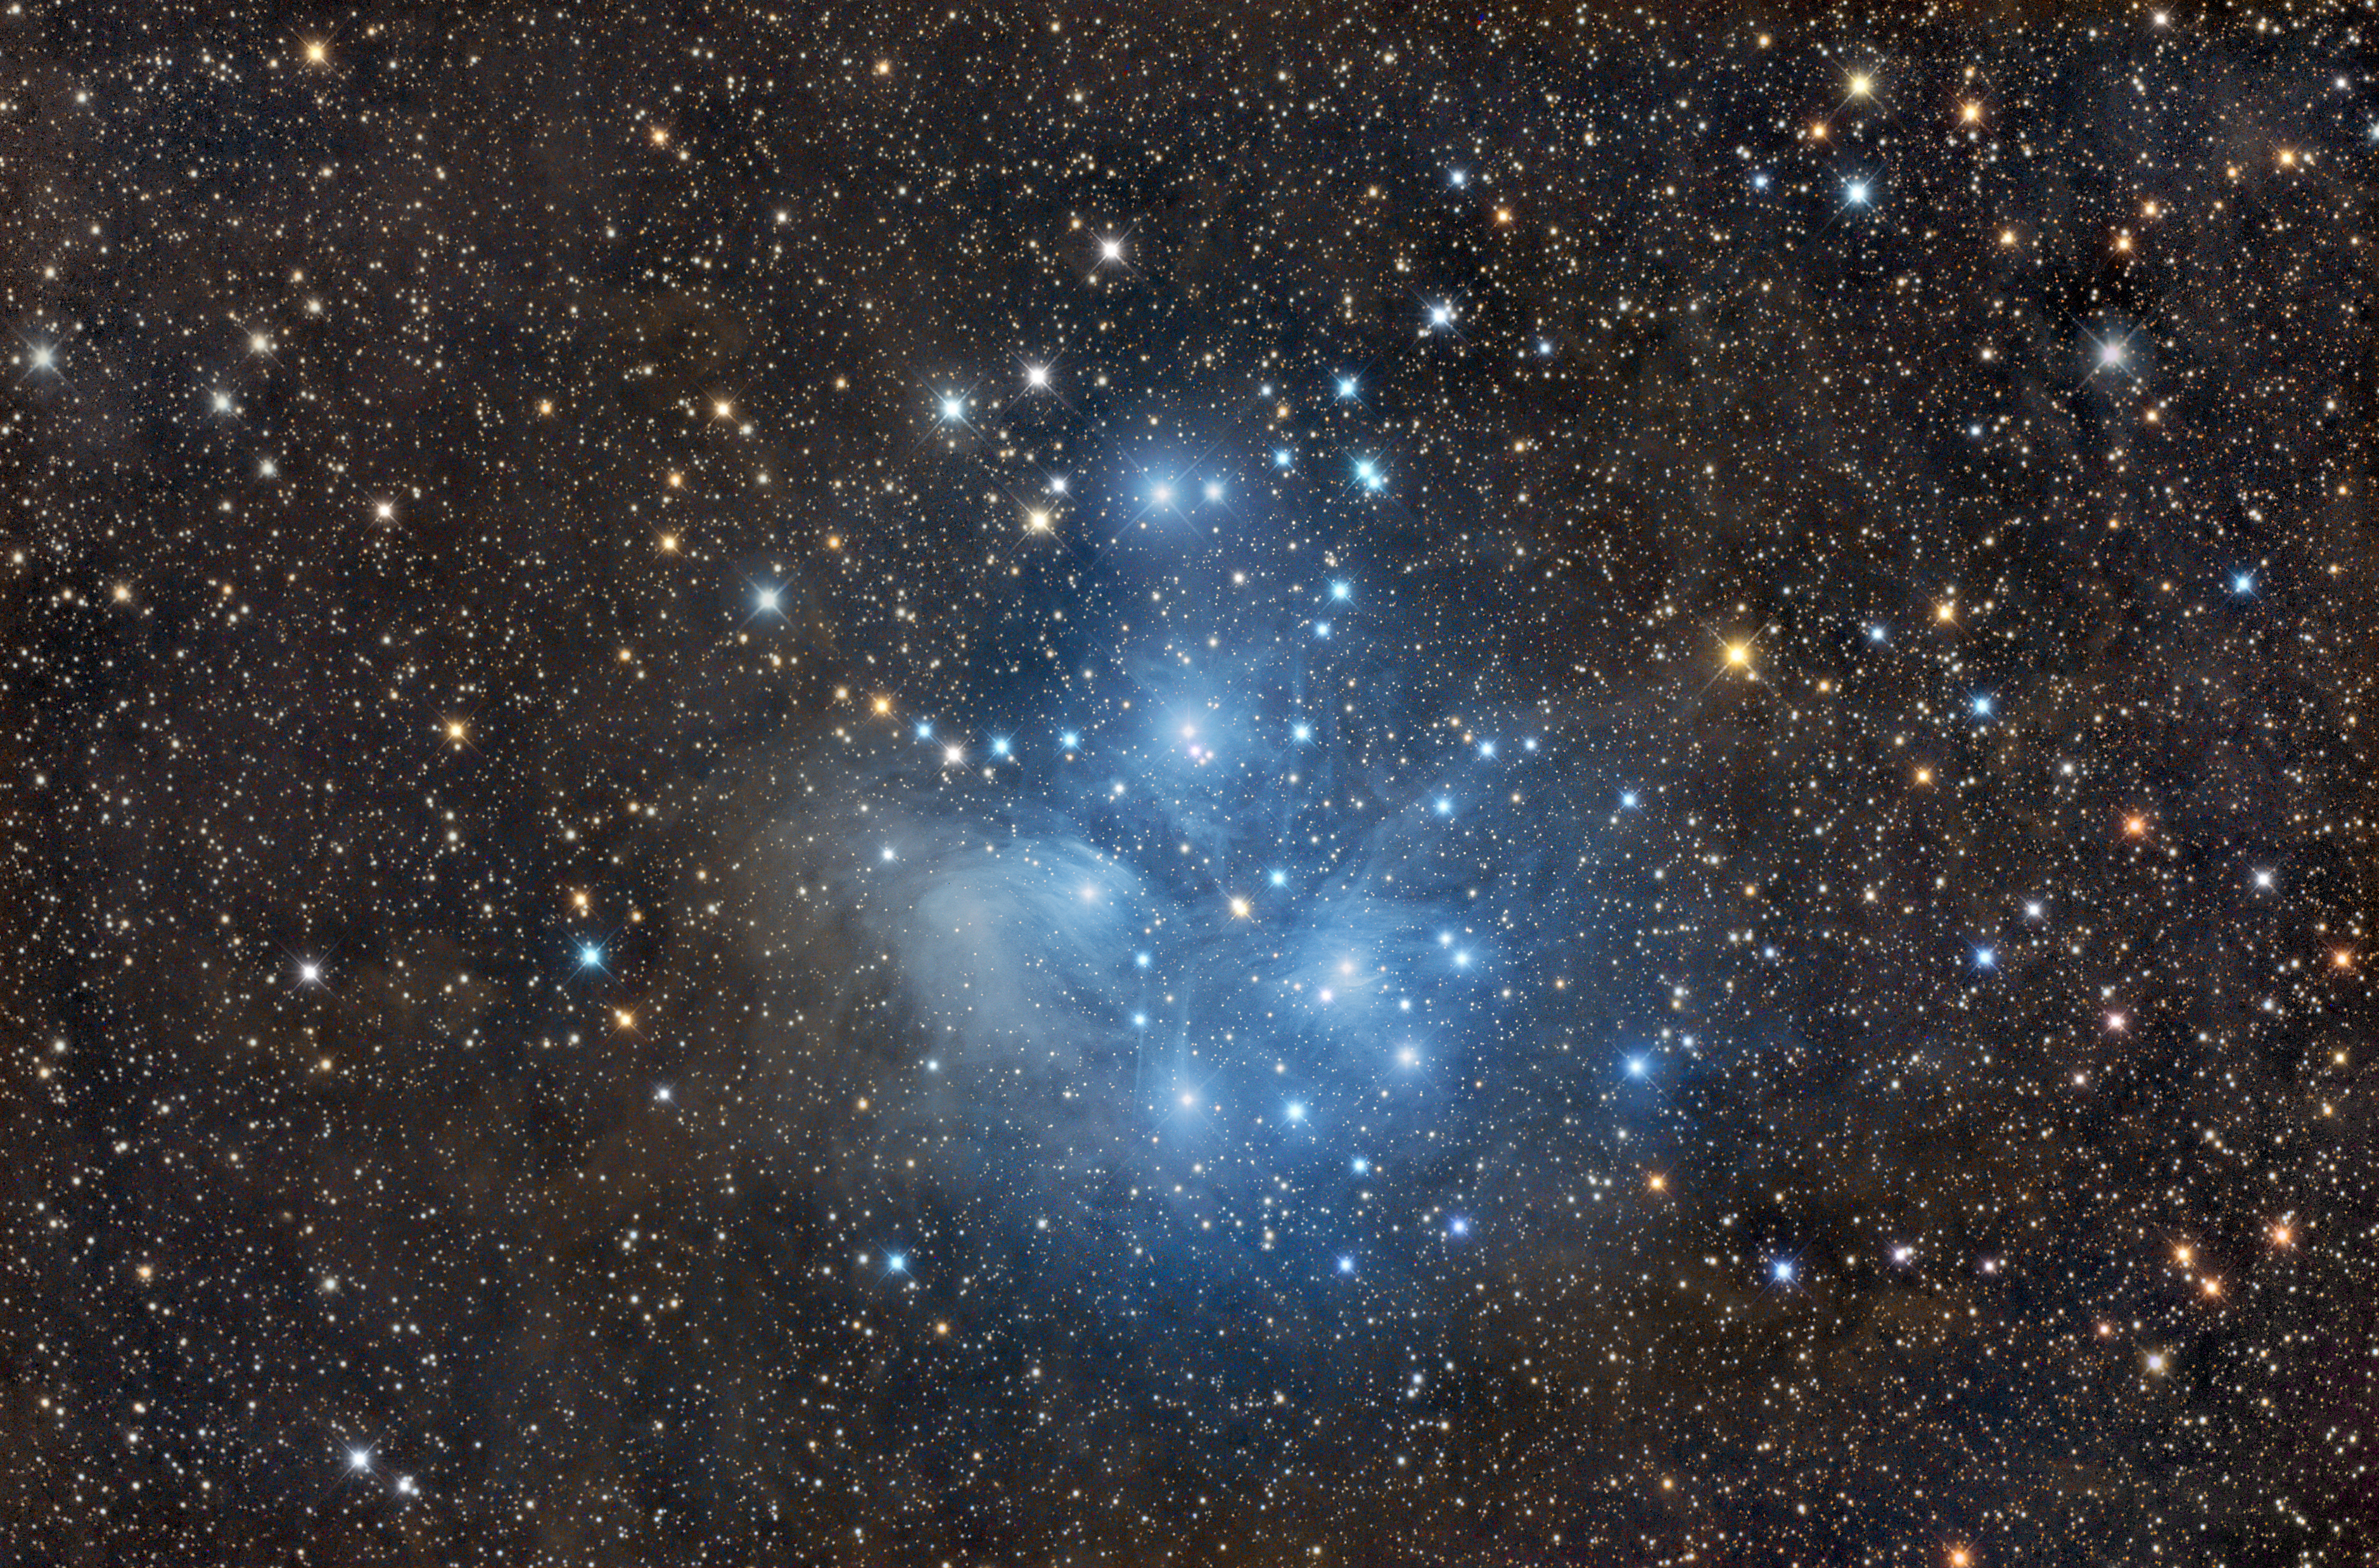 M45 by Terry Hancock and Robert Fields